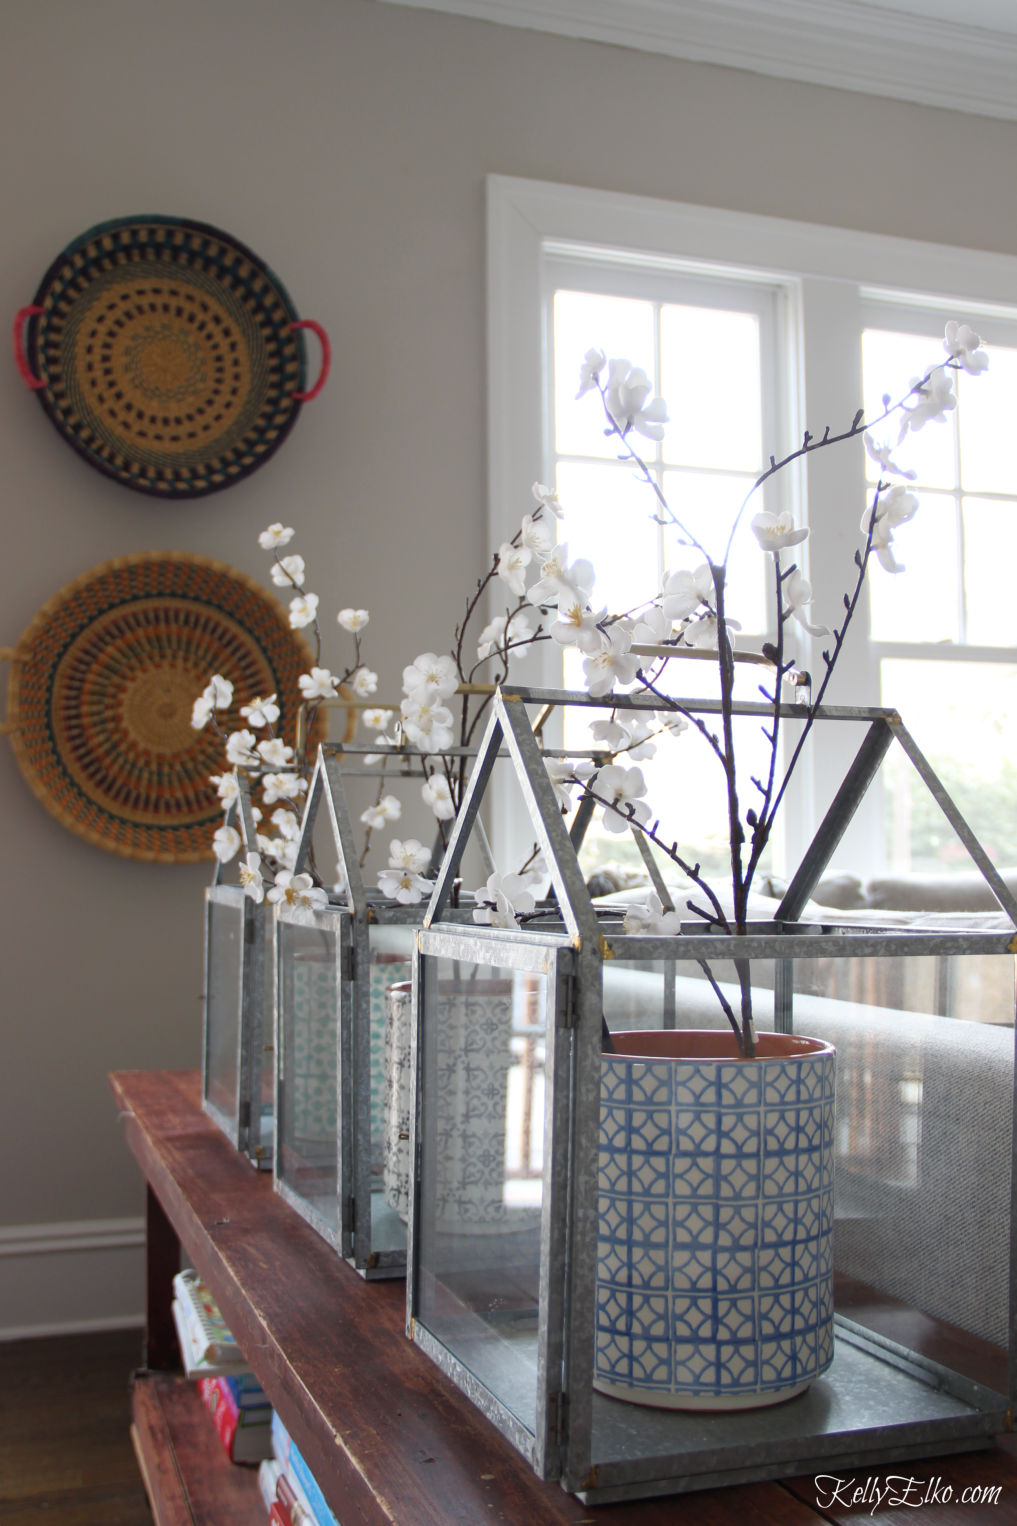 Love these lanterns filled with spring branches kellyelko.com #springdecor #spring #farmhousedecor #farmhousestyle #boho #bohostyle #familyroom #familyroomdecor